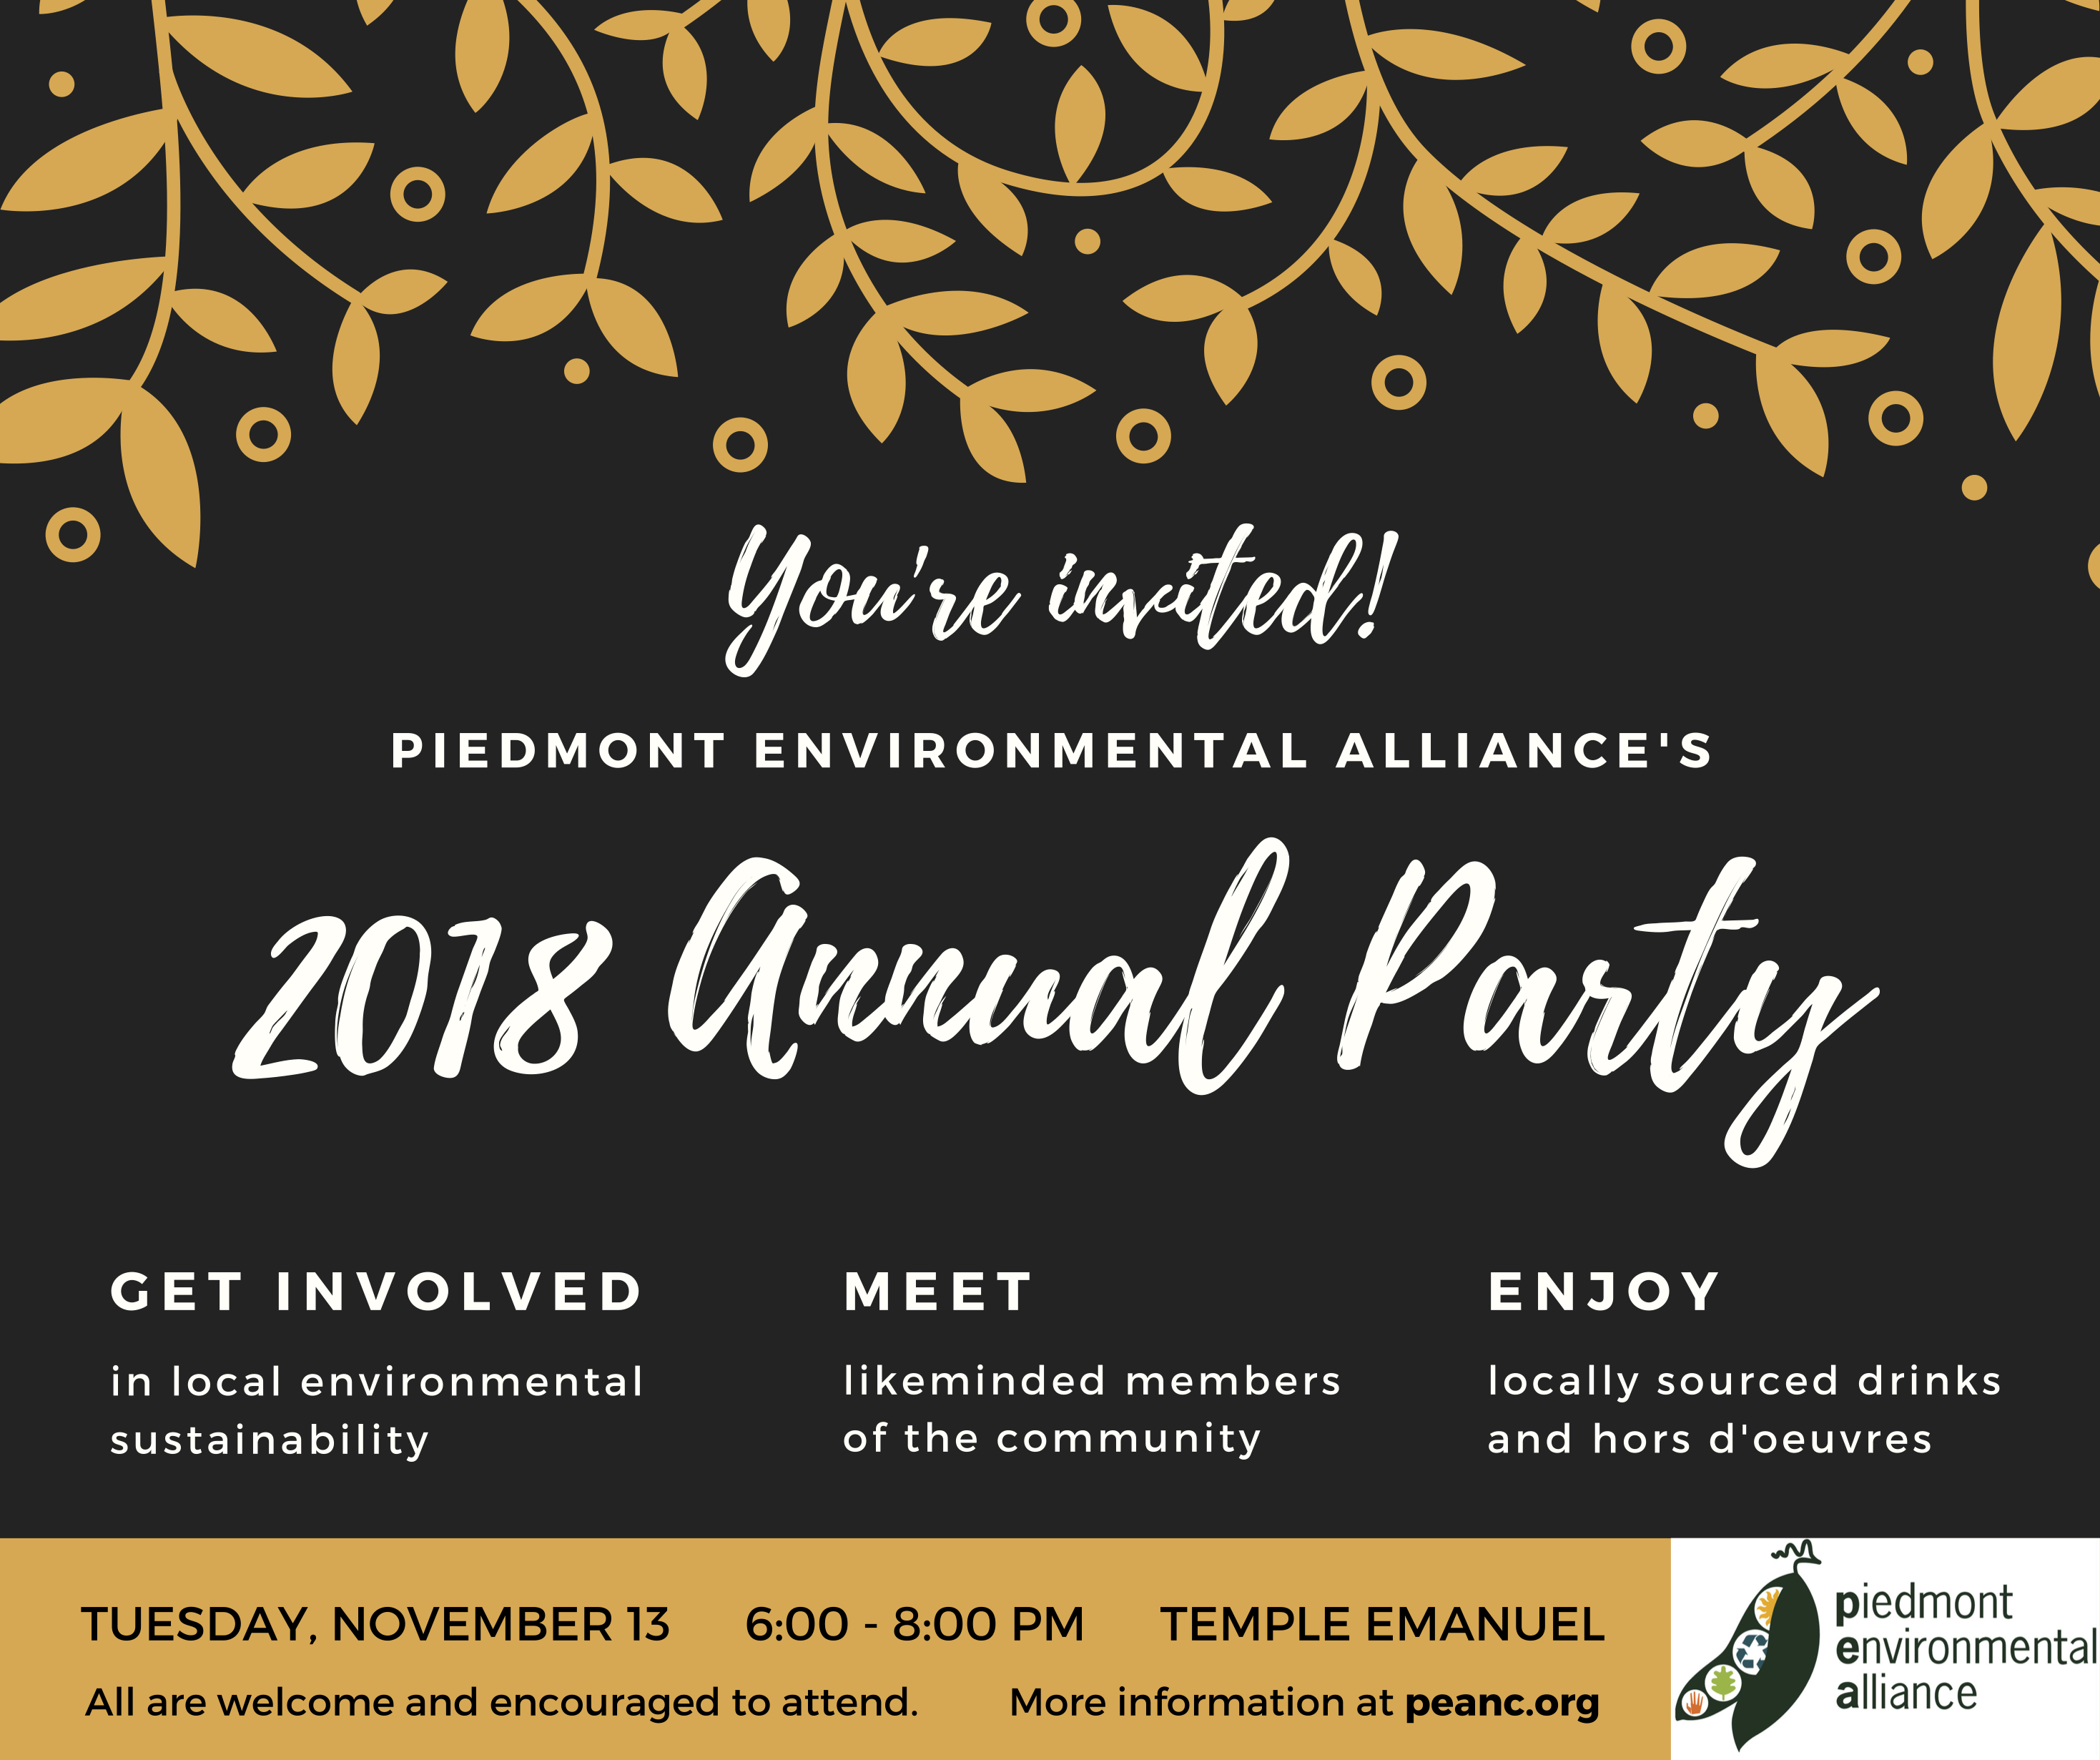 Annual Party for Piedmont Environmental Alliance